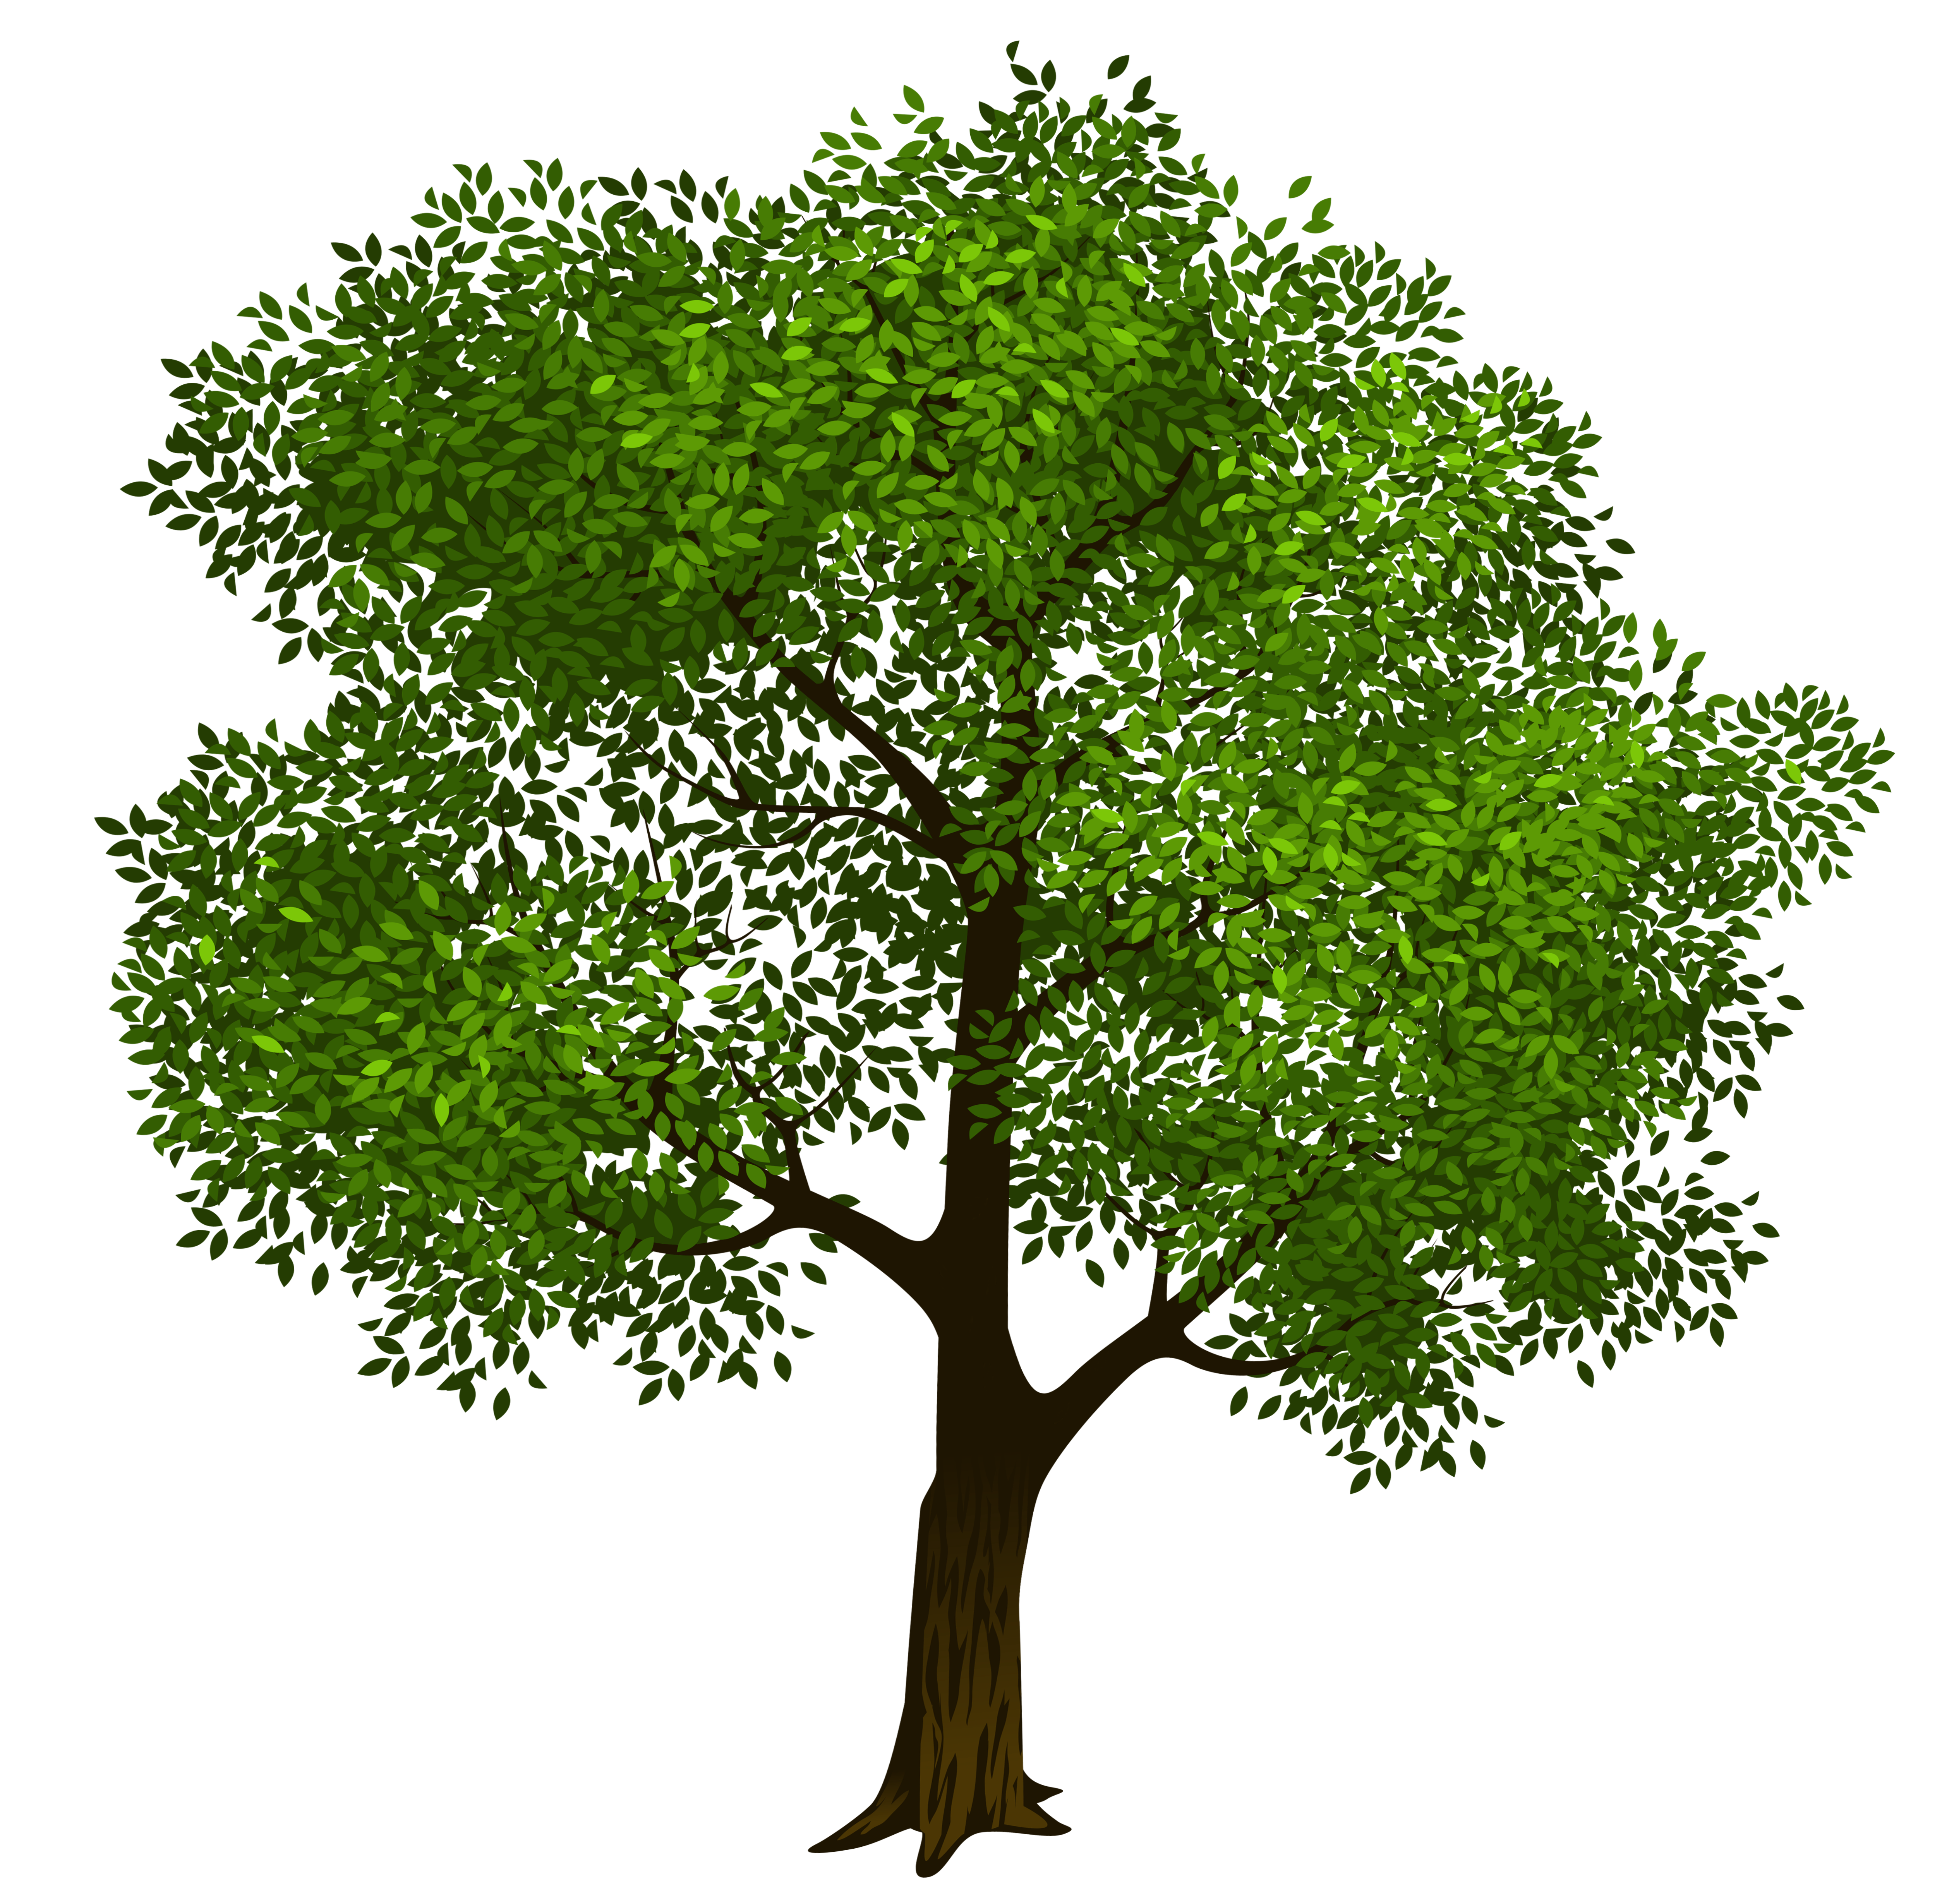 Family tree clipart free clipart images - Cliparting.com ...